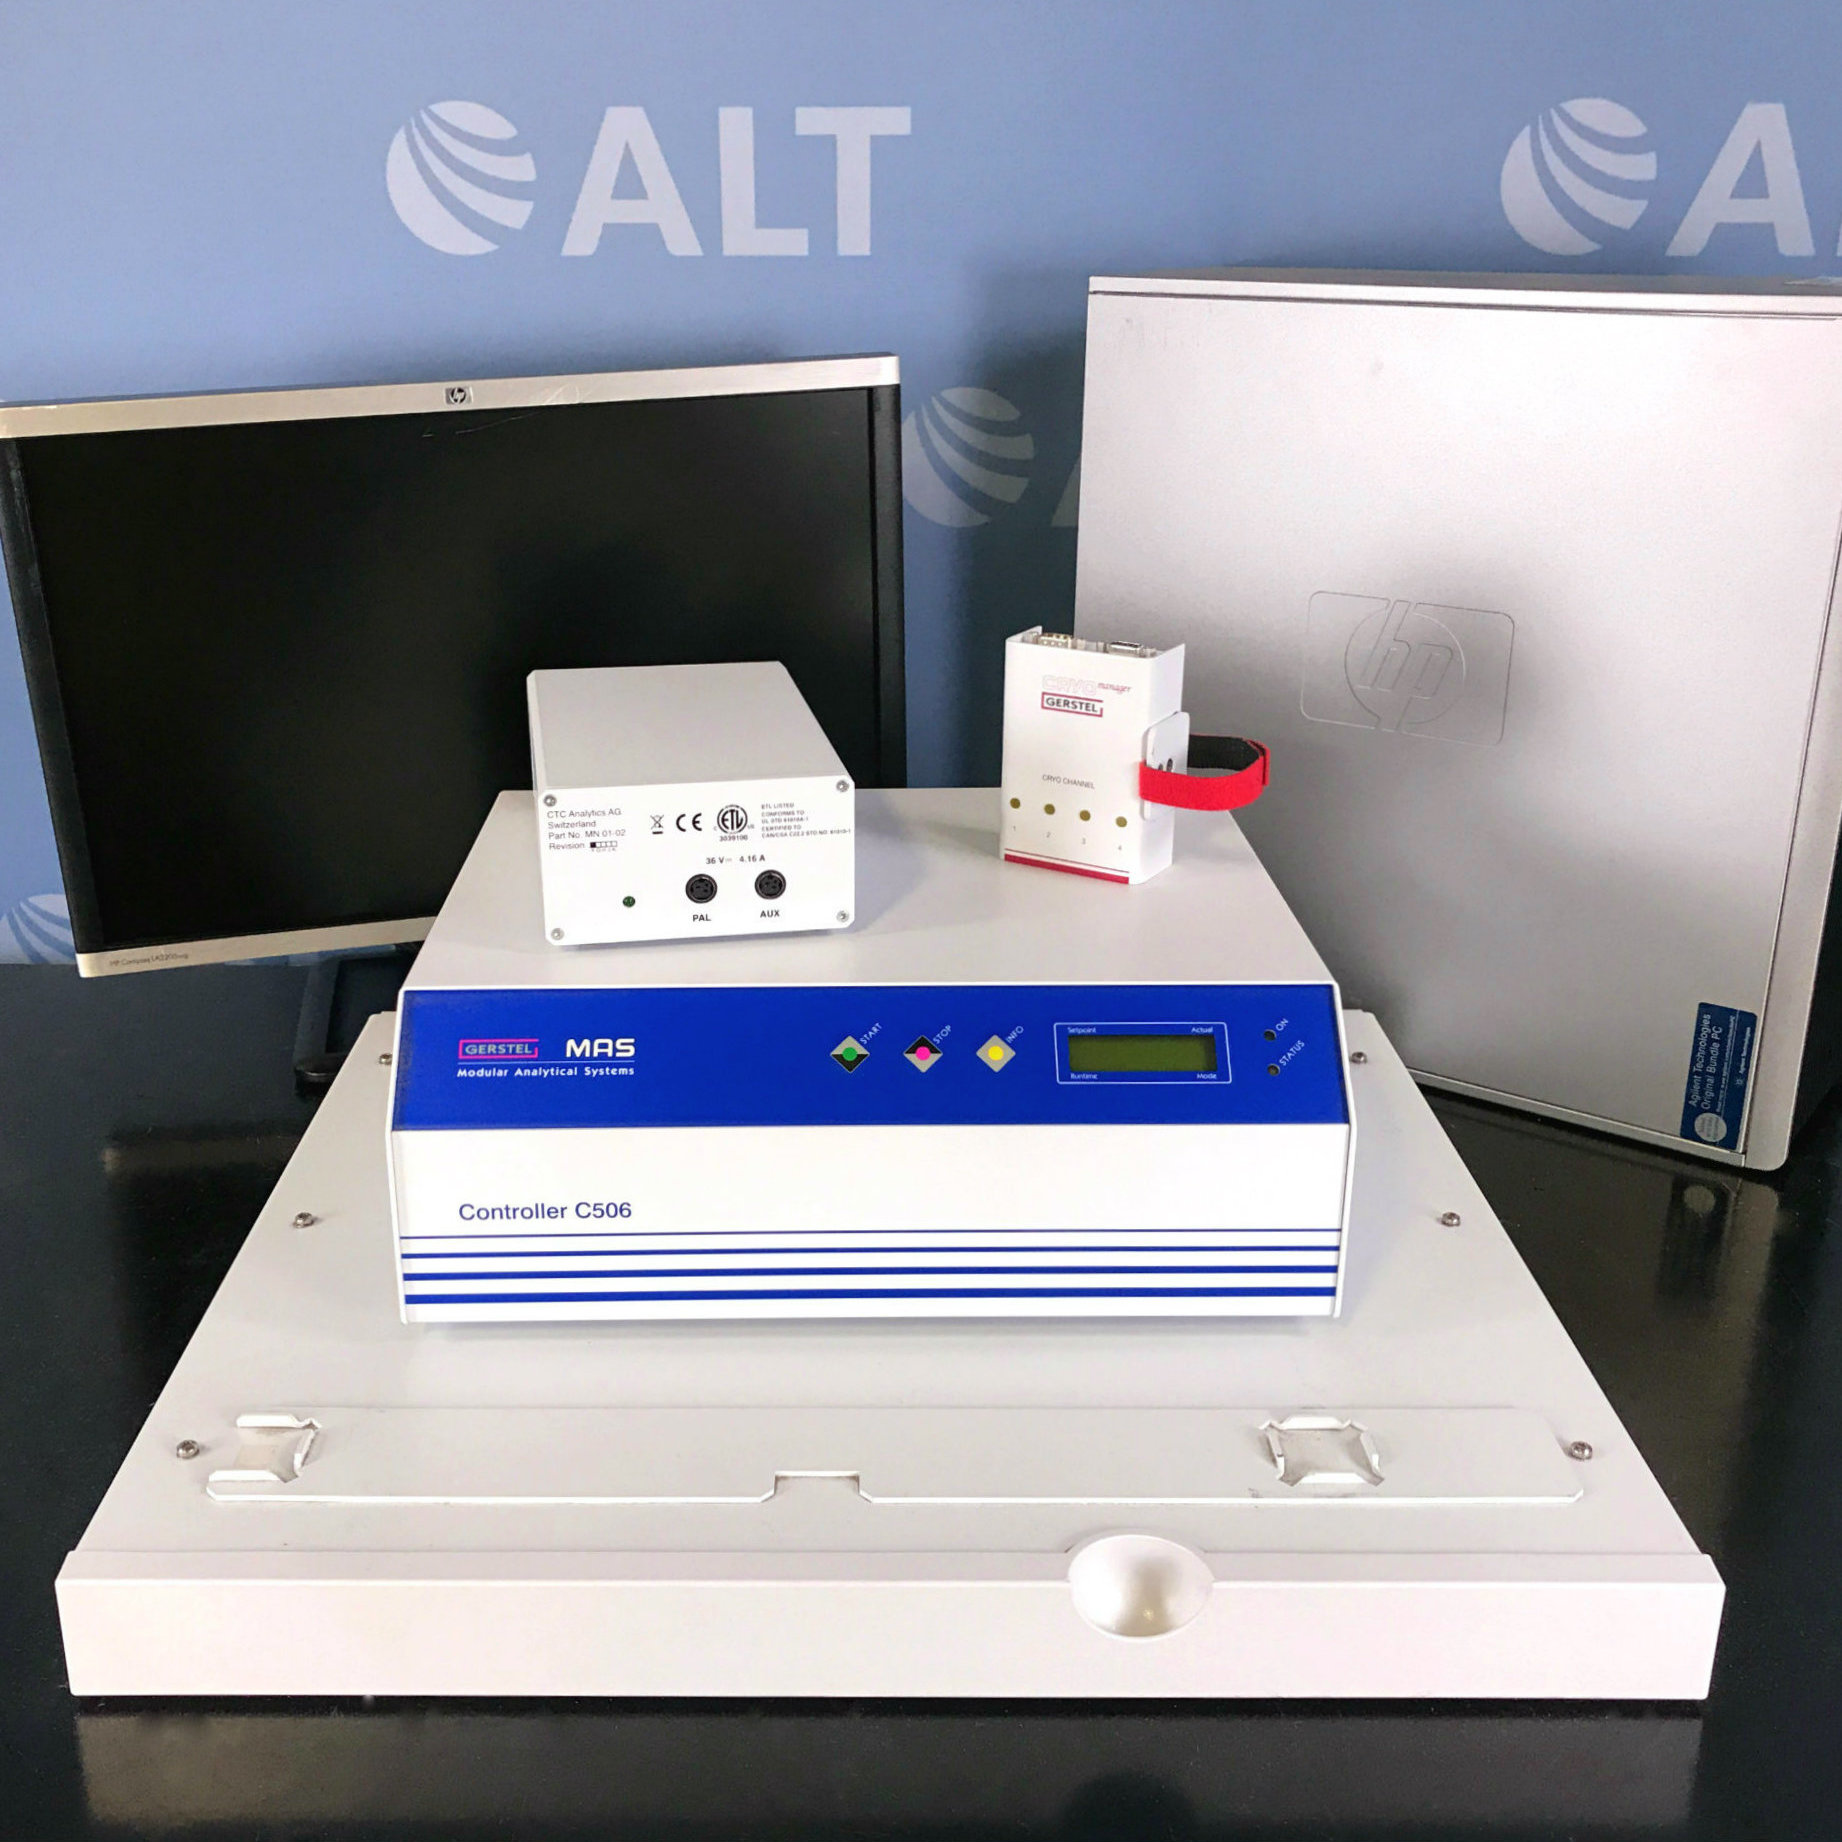 Agilent 7200 Series Q-TOF GC/MS with 7890A System Image